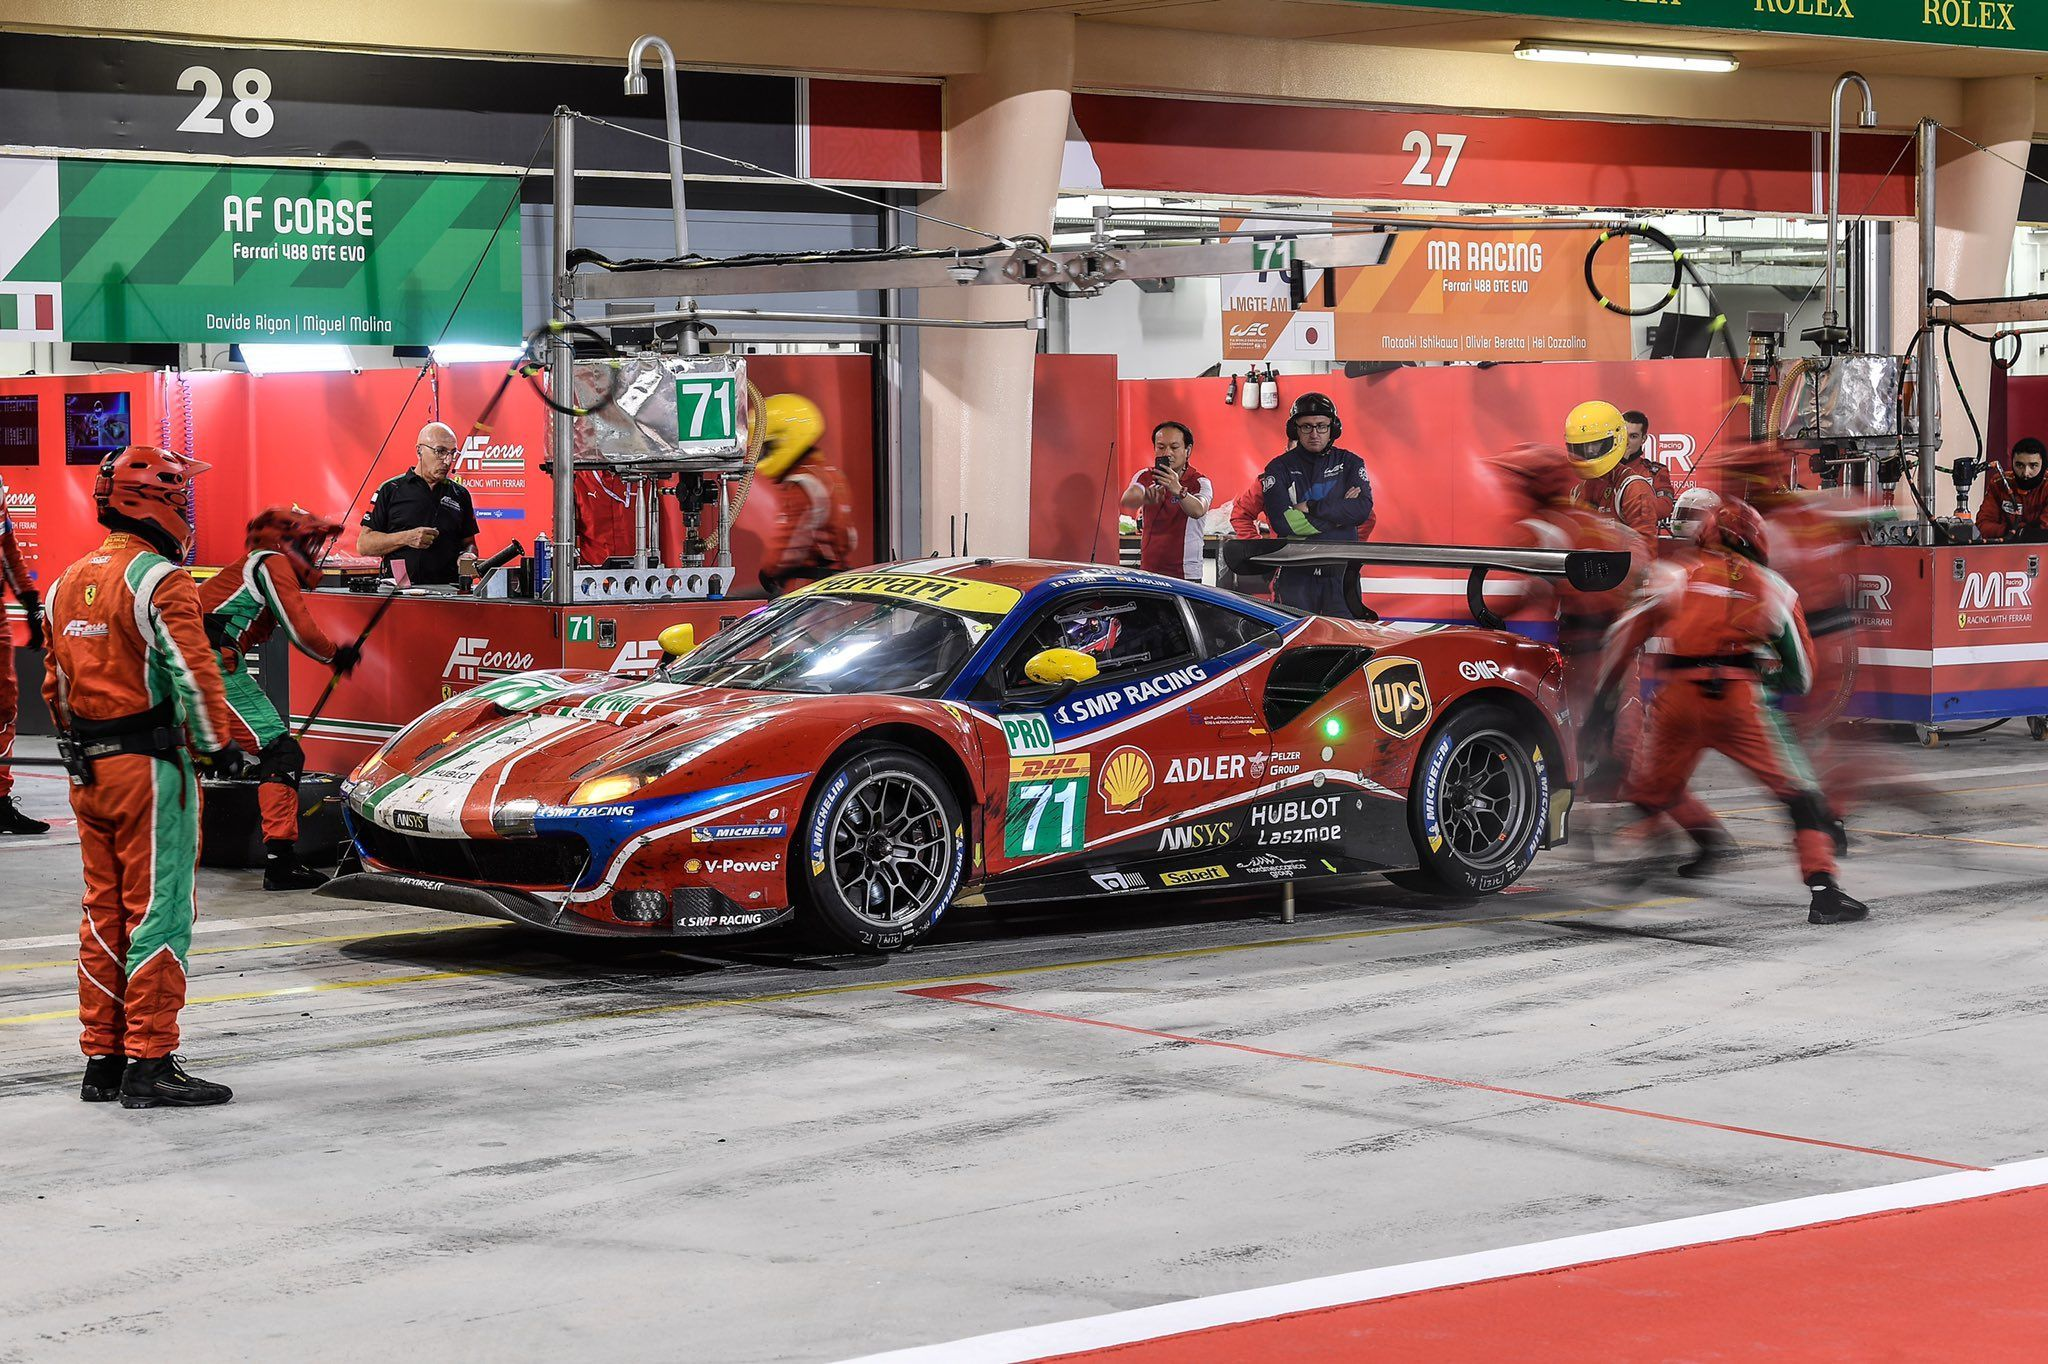 Ferrari Races On Twitter Racing Ferrari Motorsport